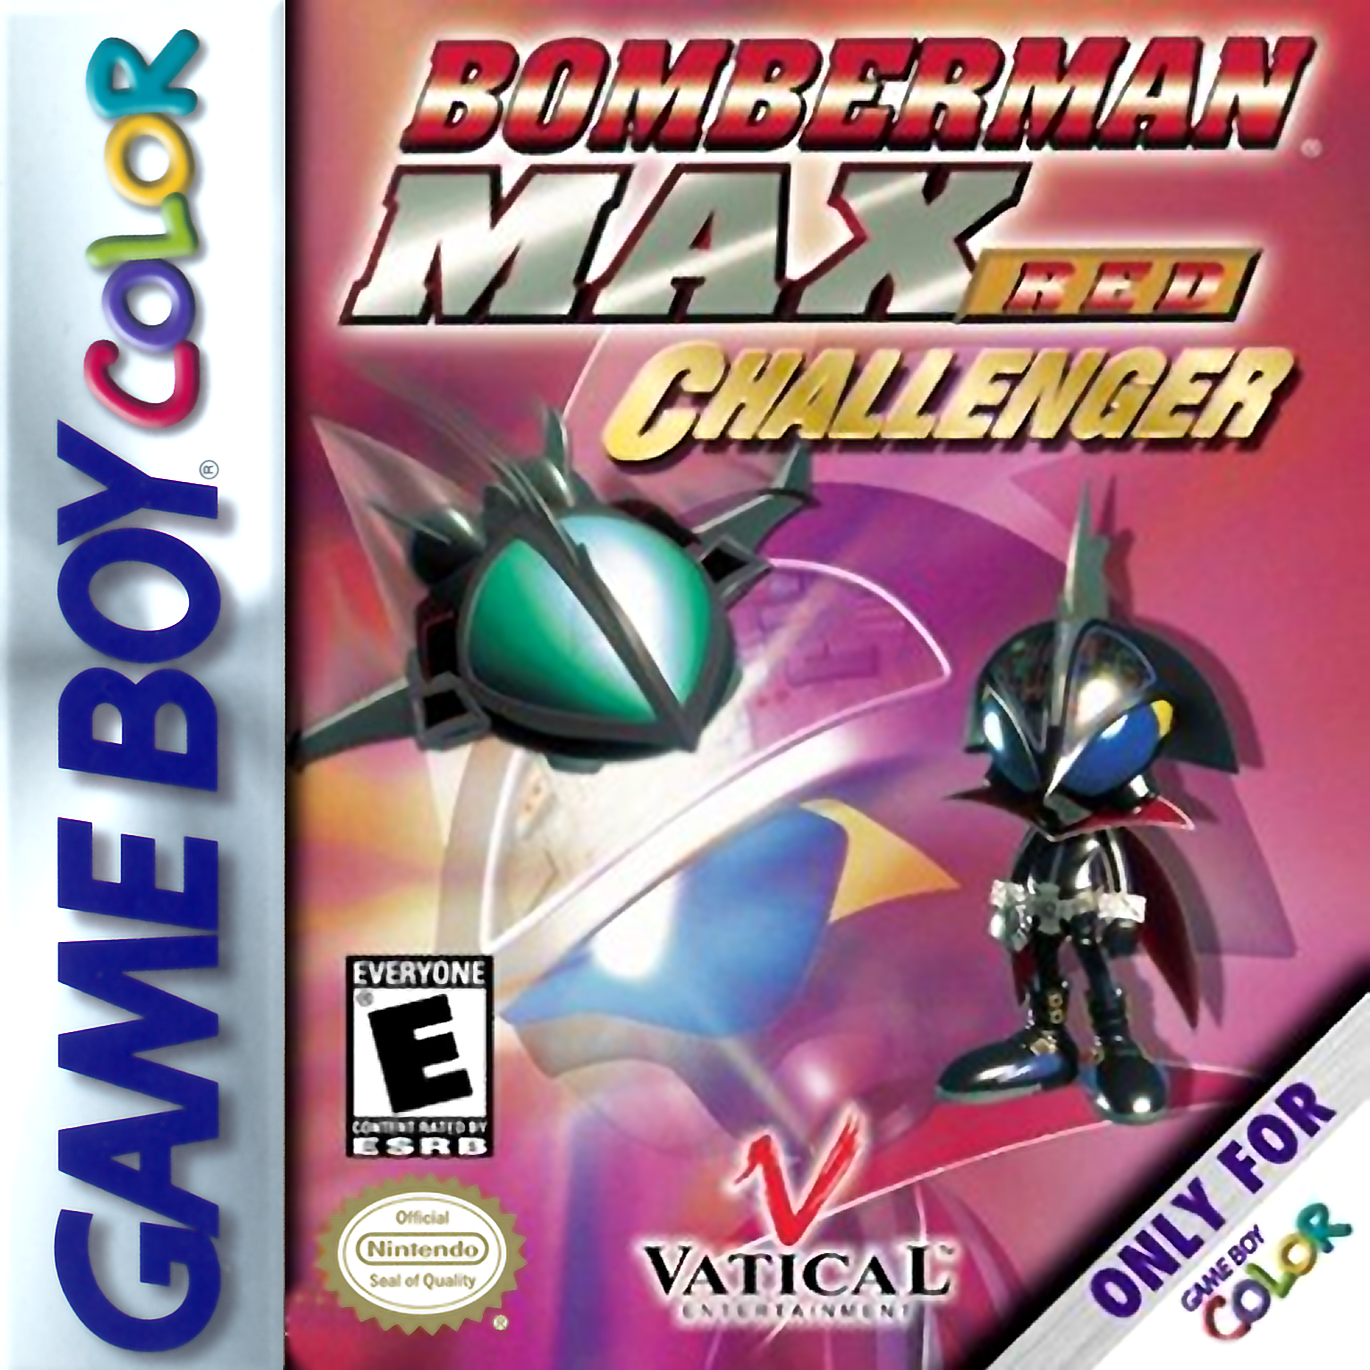 Game boy color online games - Bomberman Max Red Challenger Nintendo Game Boy Color Cover Artwork